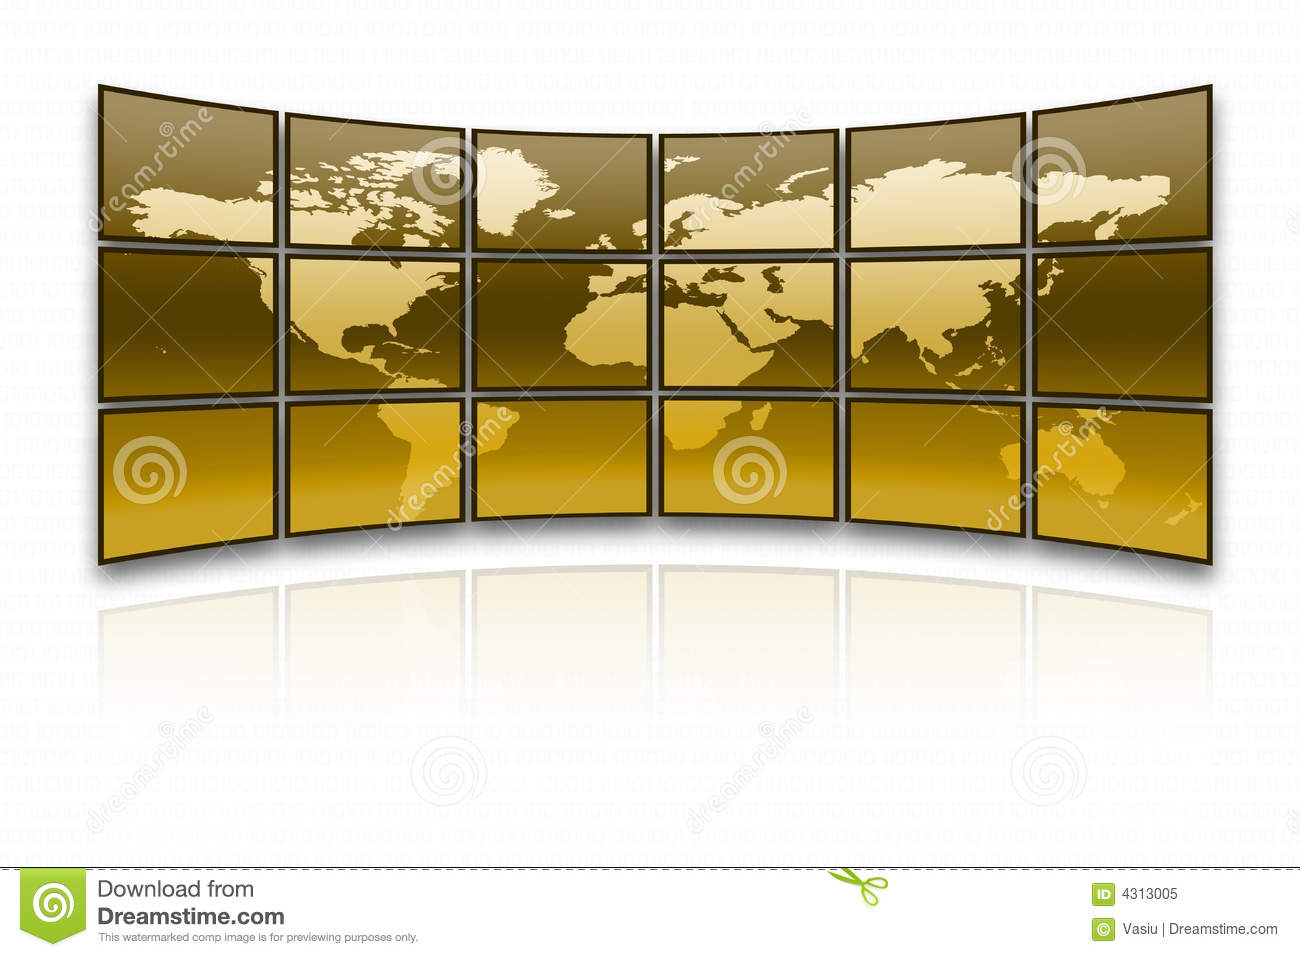 World map stock illustration illustration of america 4313005 world map download preview gumiabroncs Choice Image